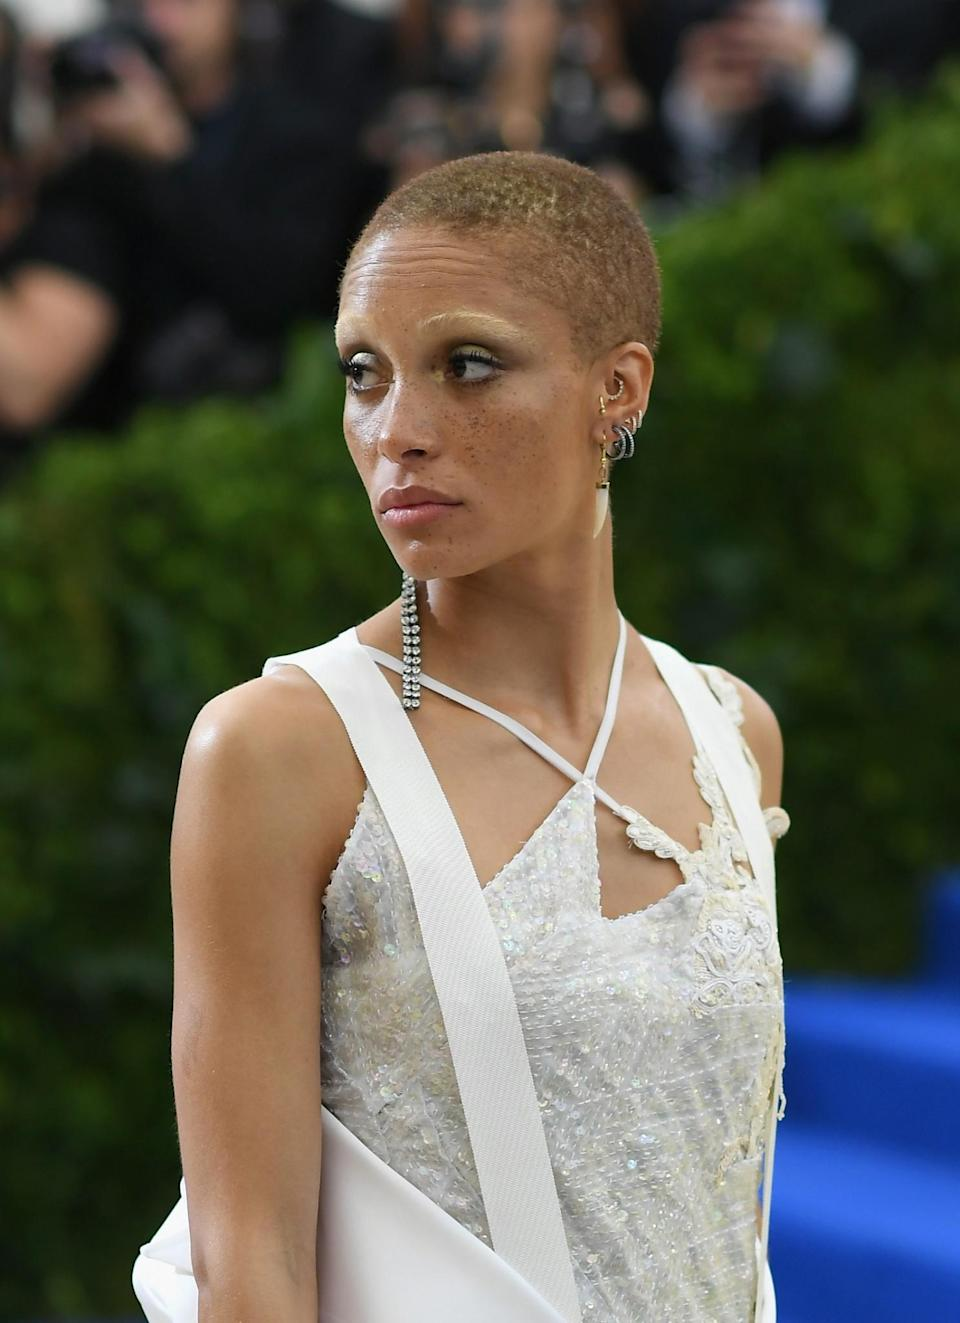 <p>The model Adwoa Aboah played up her heavy lids using Dark Star 006 in UltraSuede Brown. (Photo: Getty Images) </p>